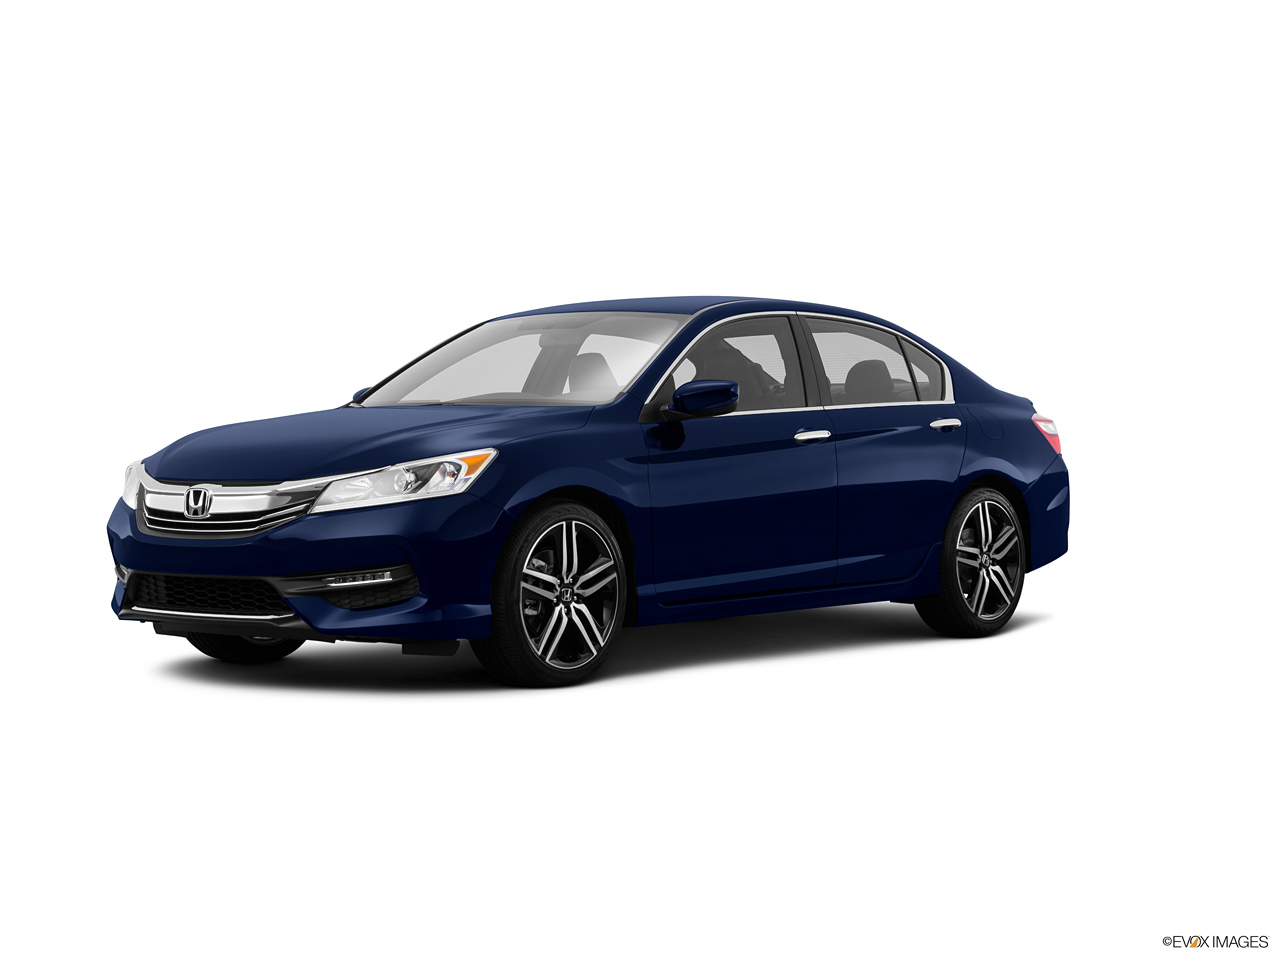 Honda accord 2016 3 5l v6 sport in uae new car prices for Tameron honda gadsden al